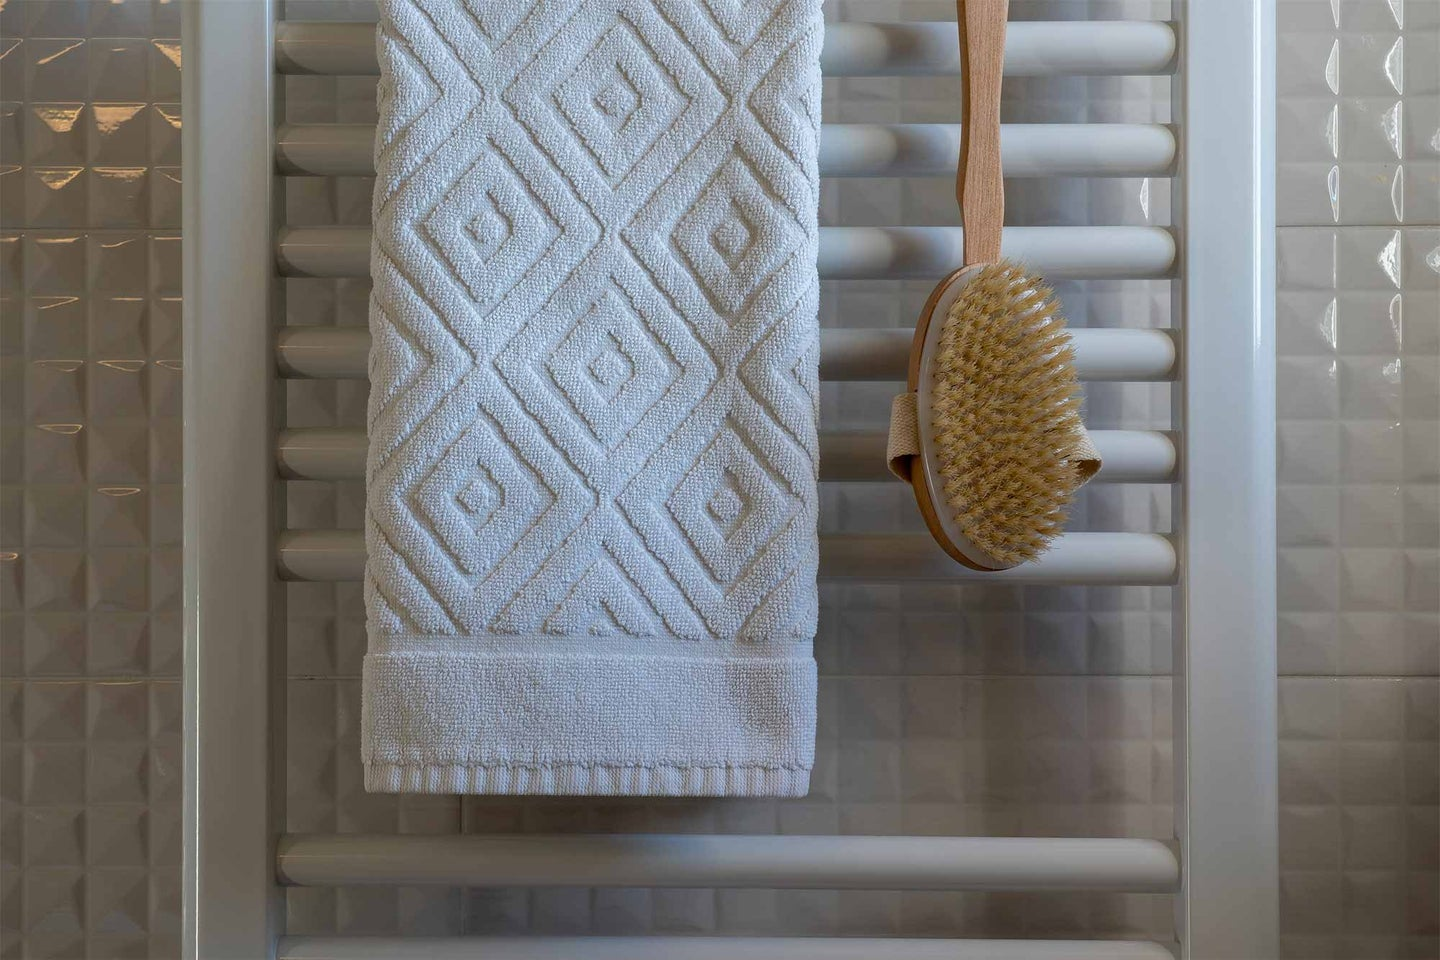 White towels hanging in a bathroom